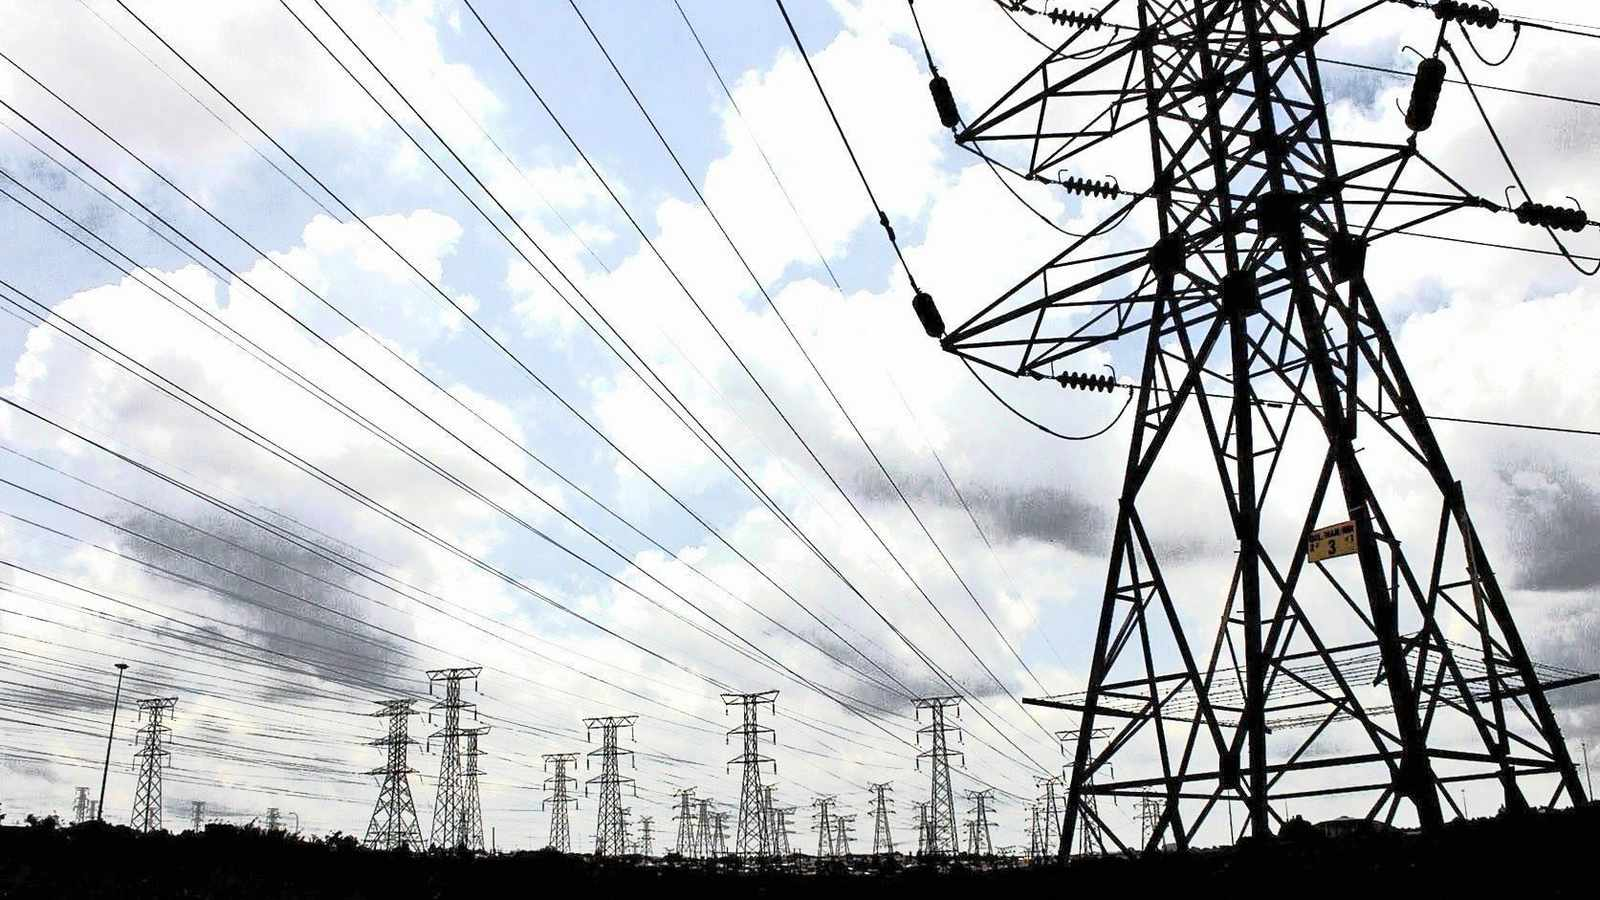 No load shedding expected on Friday, says Eskom